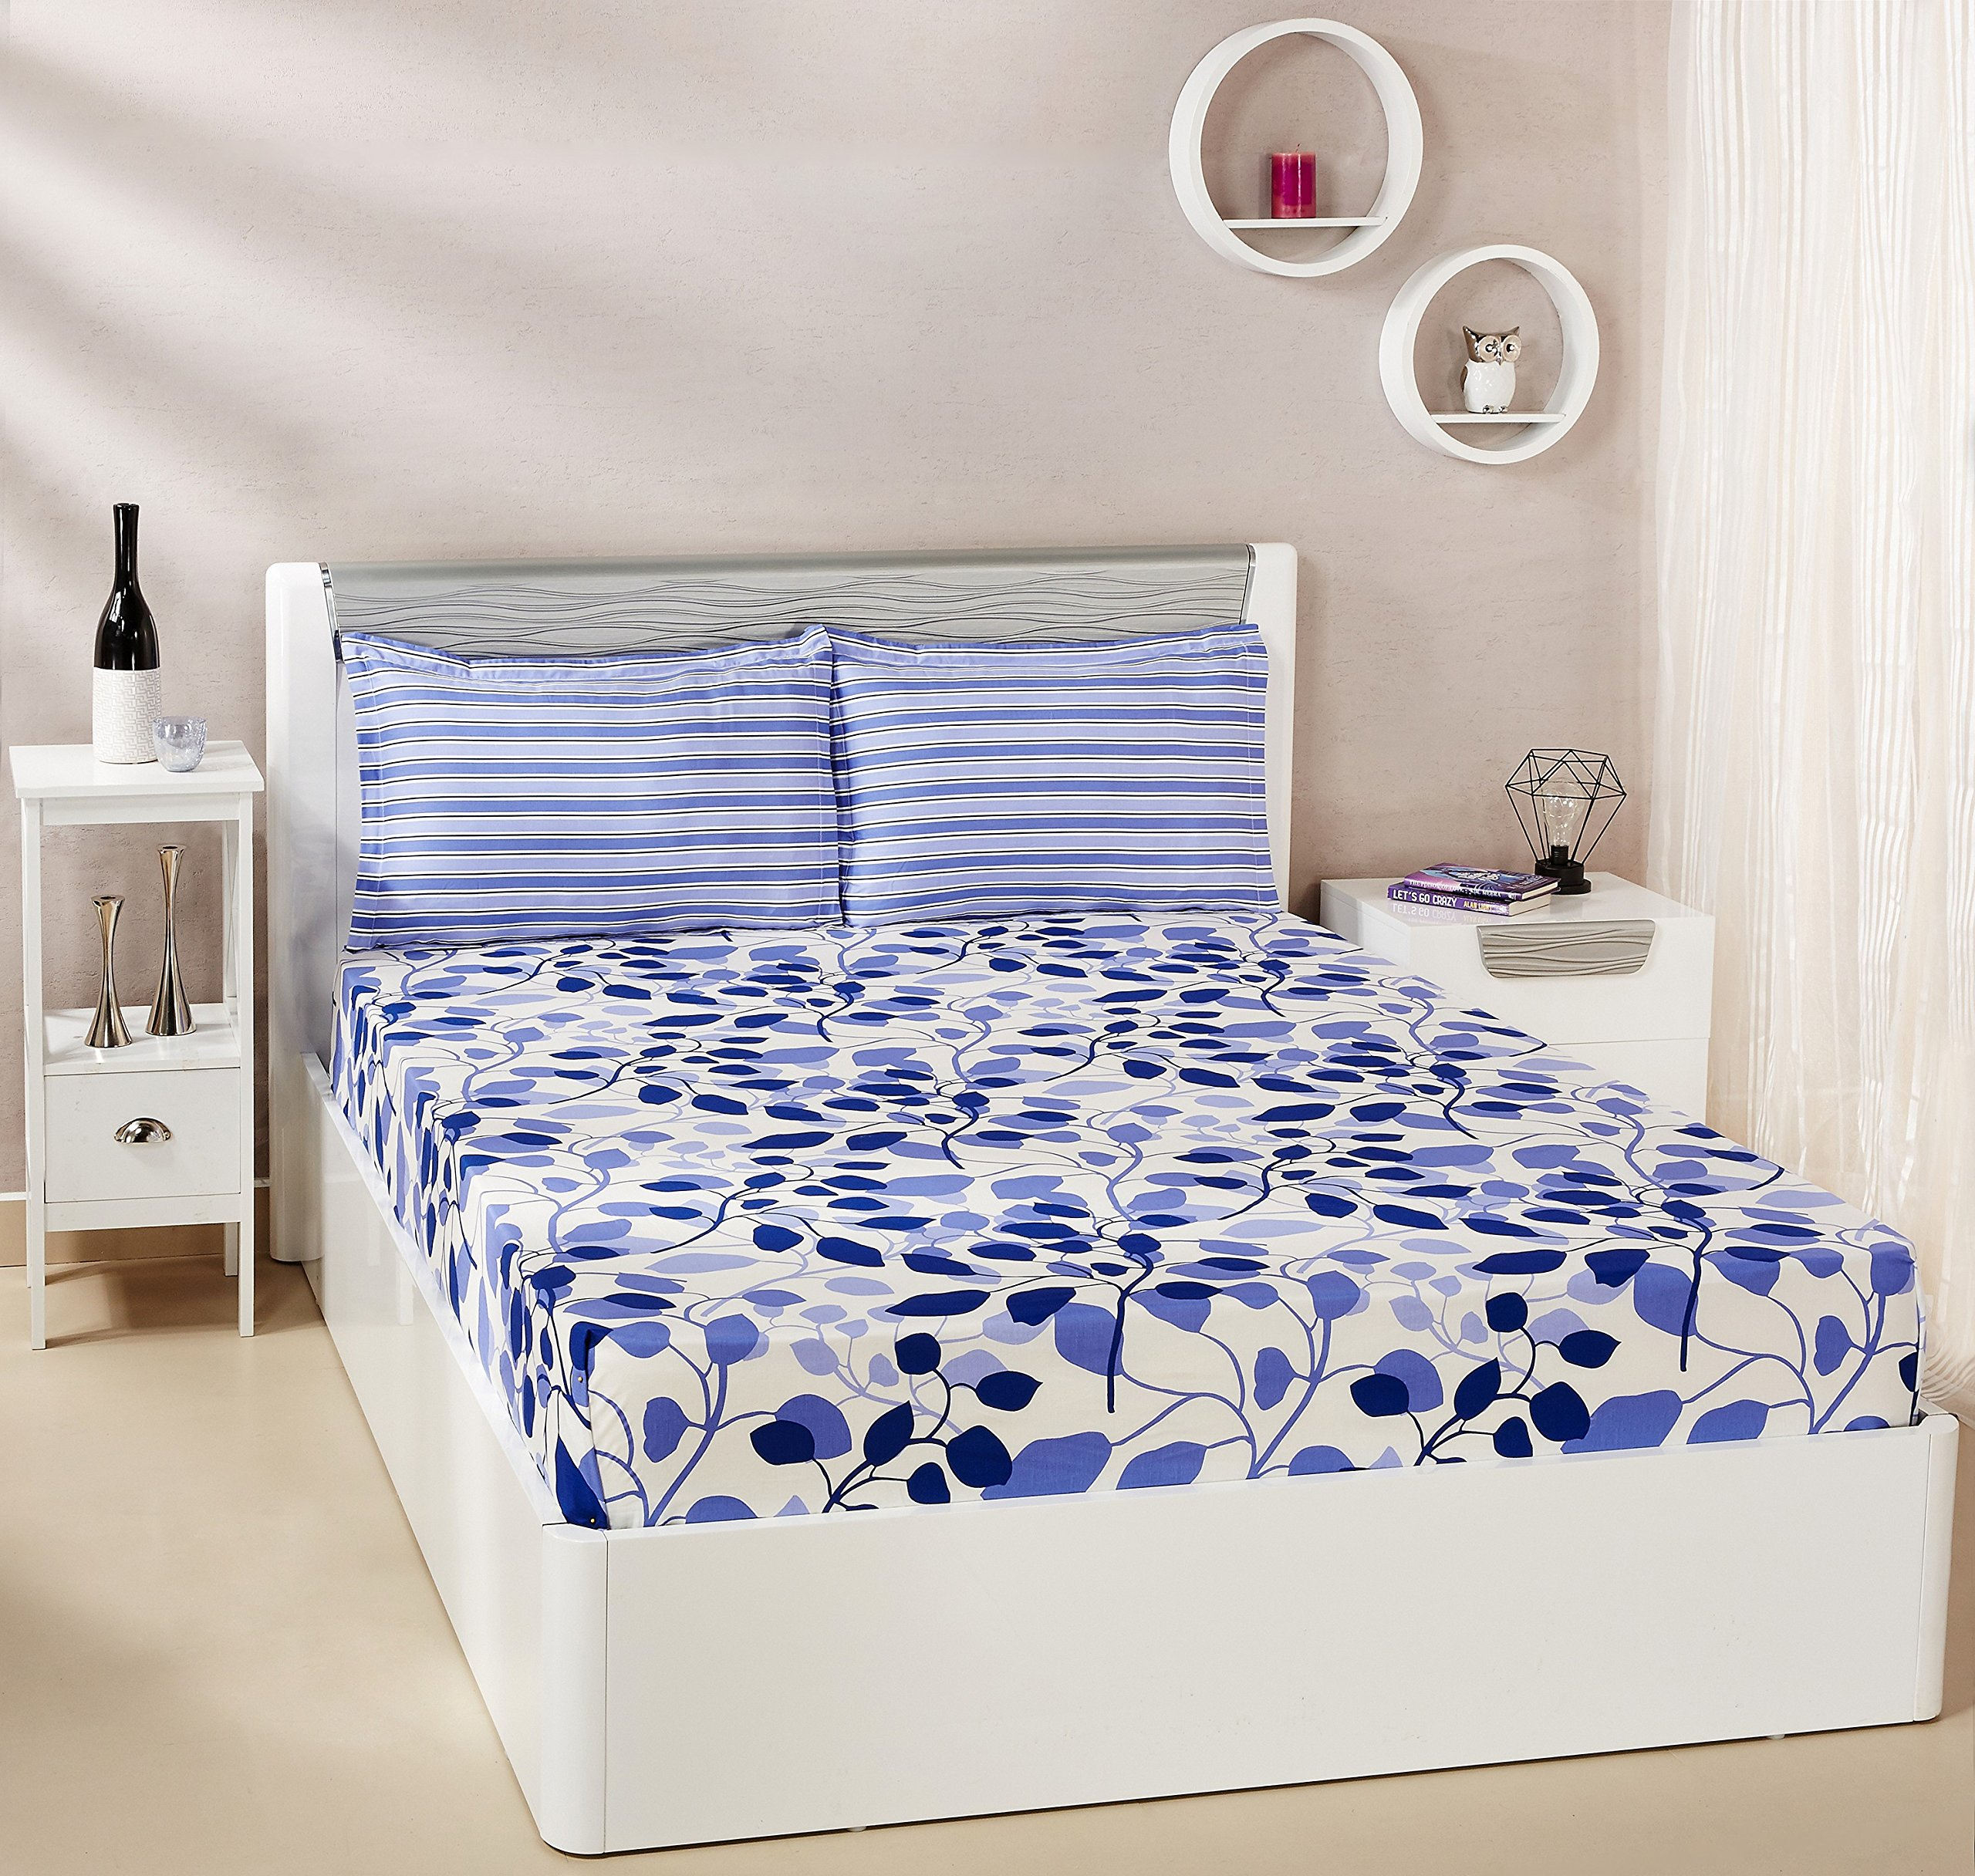 Amazon Brand - Solimo Leafy Spring 144 TC 100% Cotton Double Bedsheet with 2 Pillow Covers, Blue product image